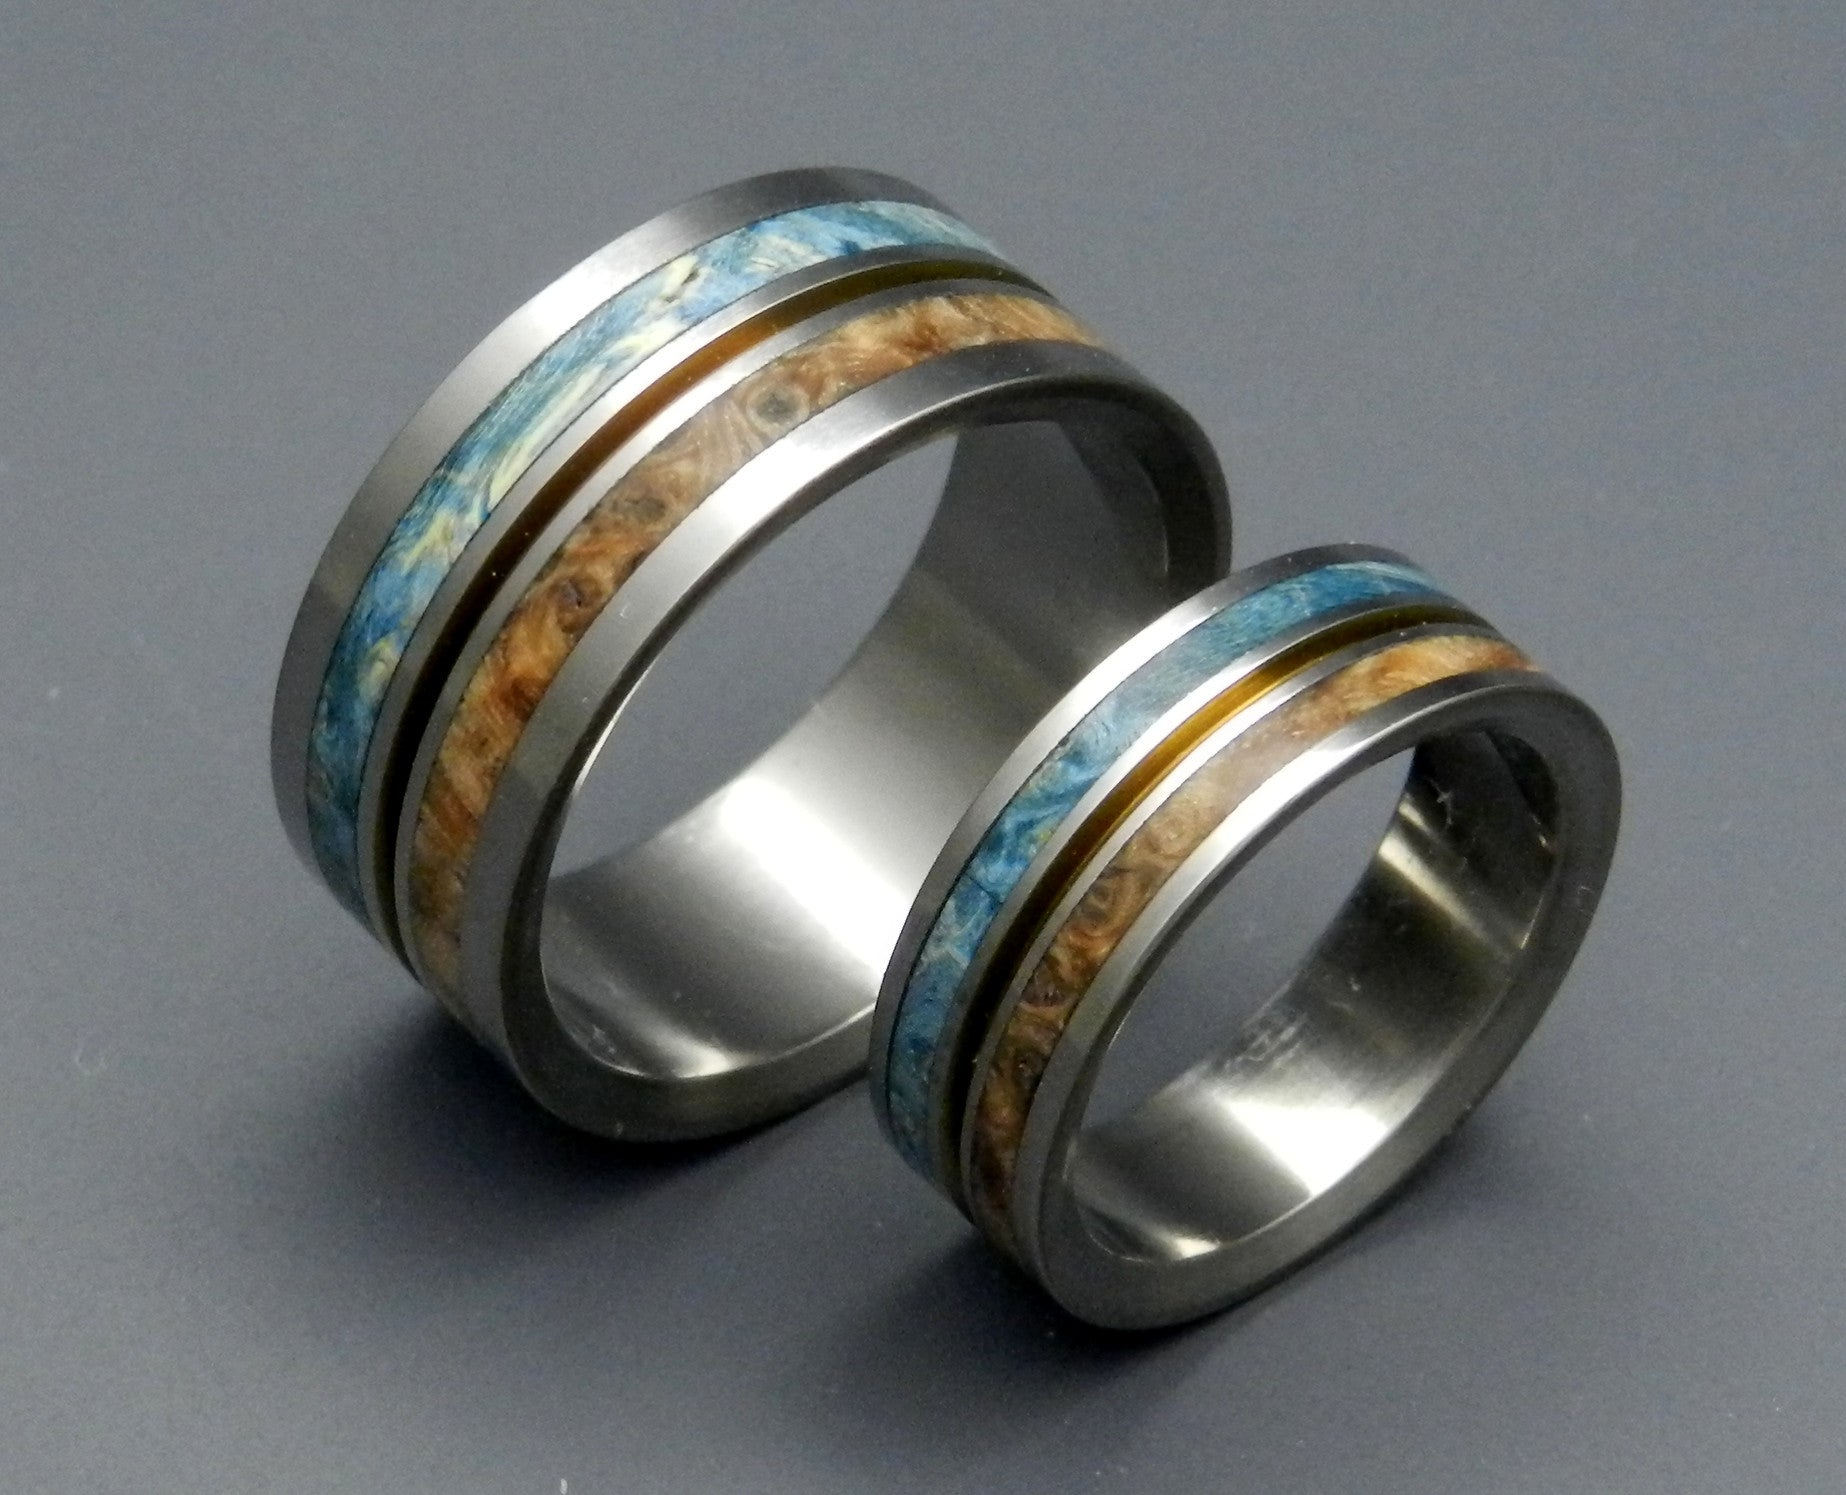 wooden wedding rings - Wooden Wedding Rings